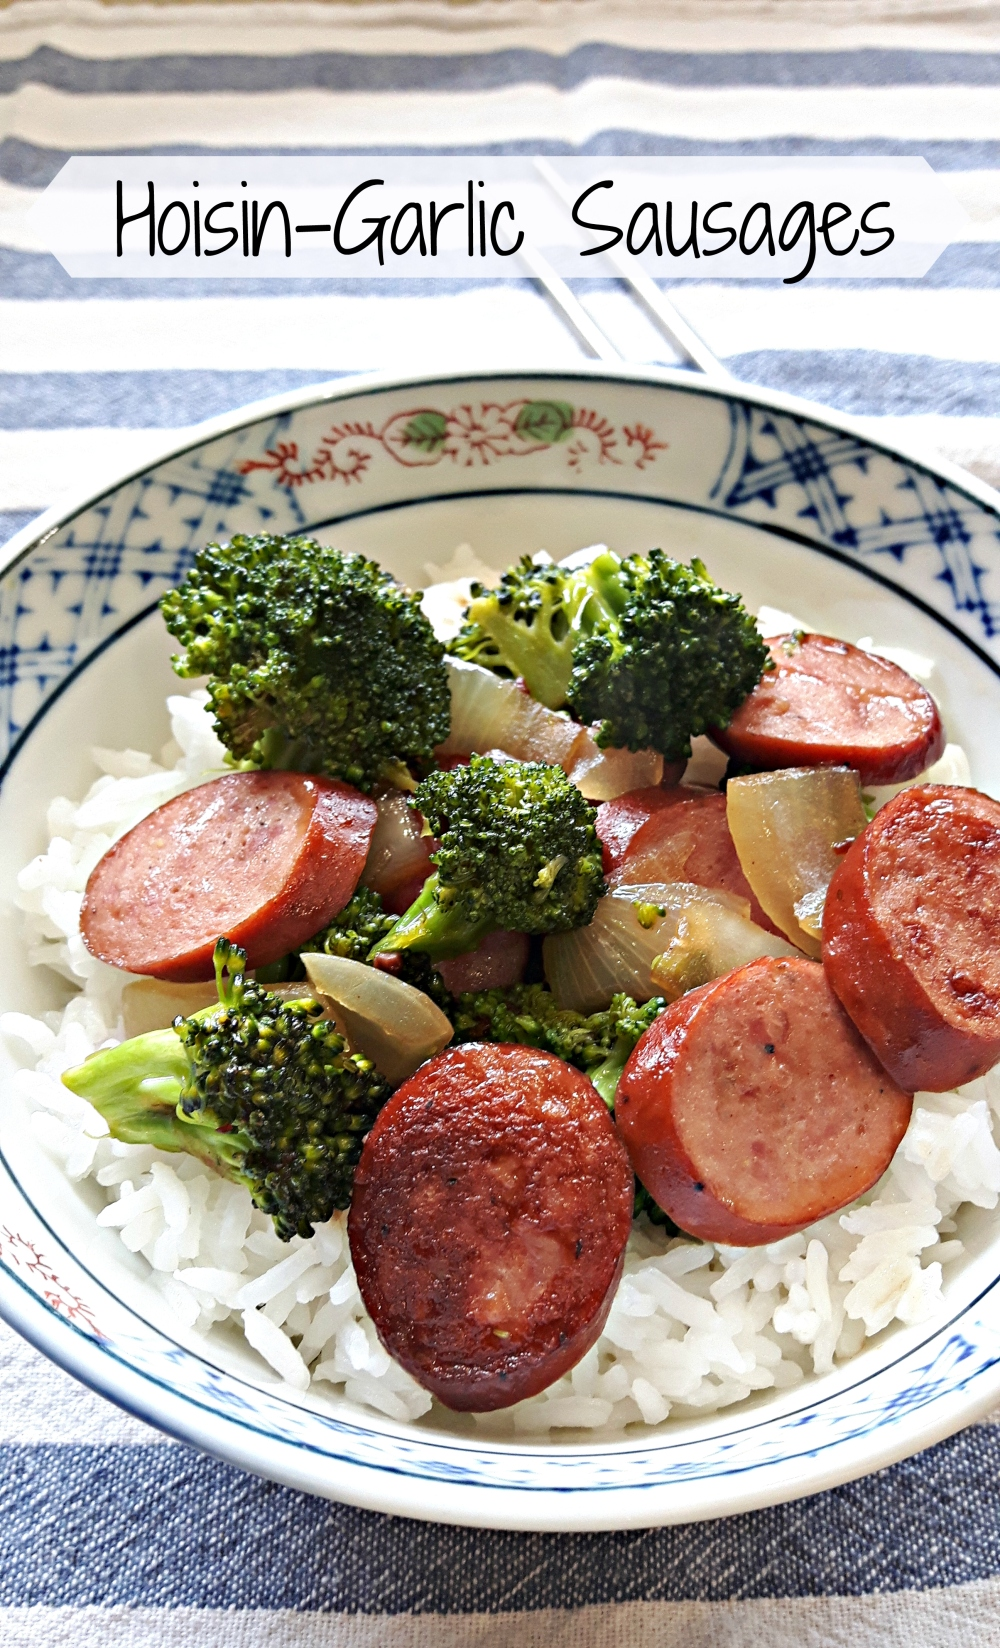 hoisin-garlic sausages1